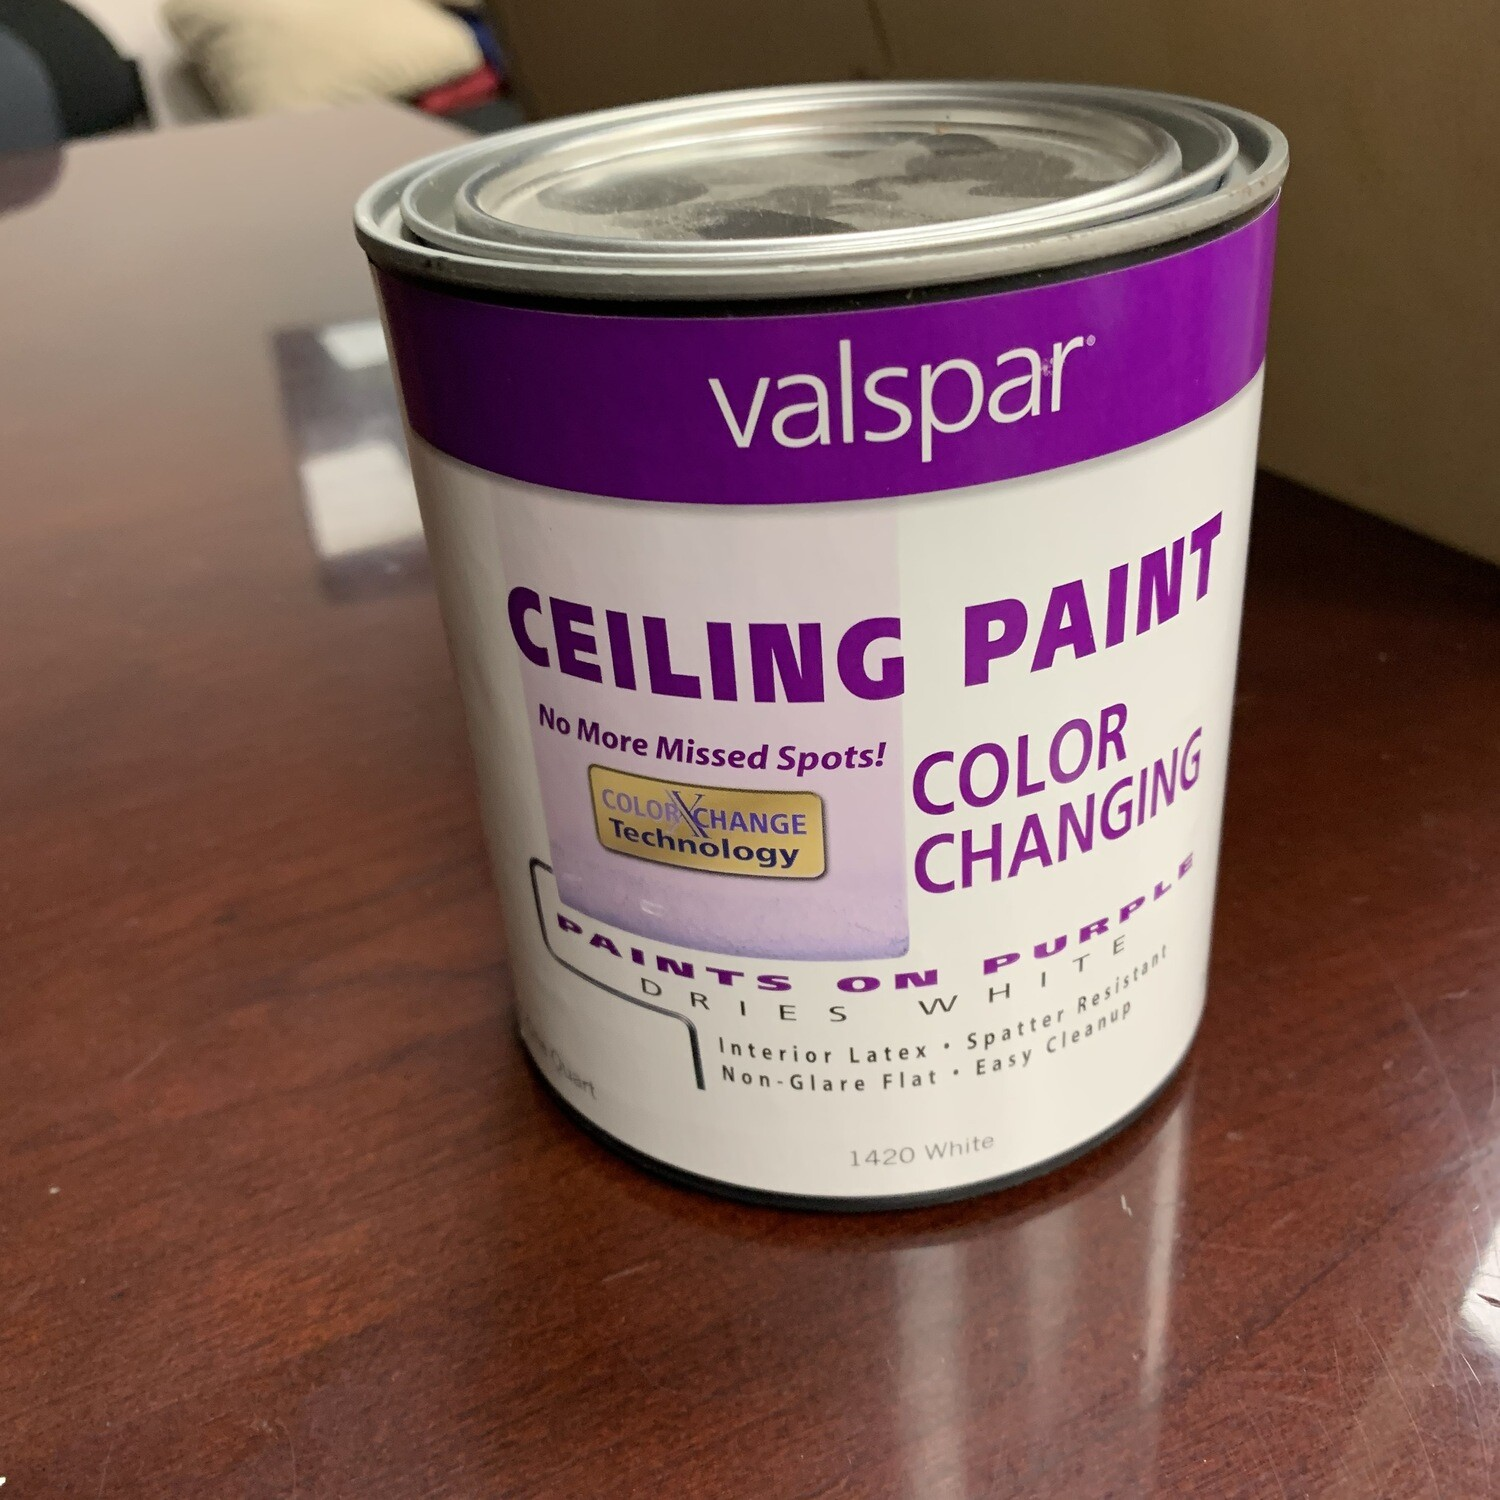 Valspar Color Changing Ceiling Paint